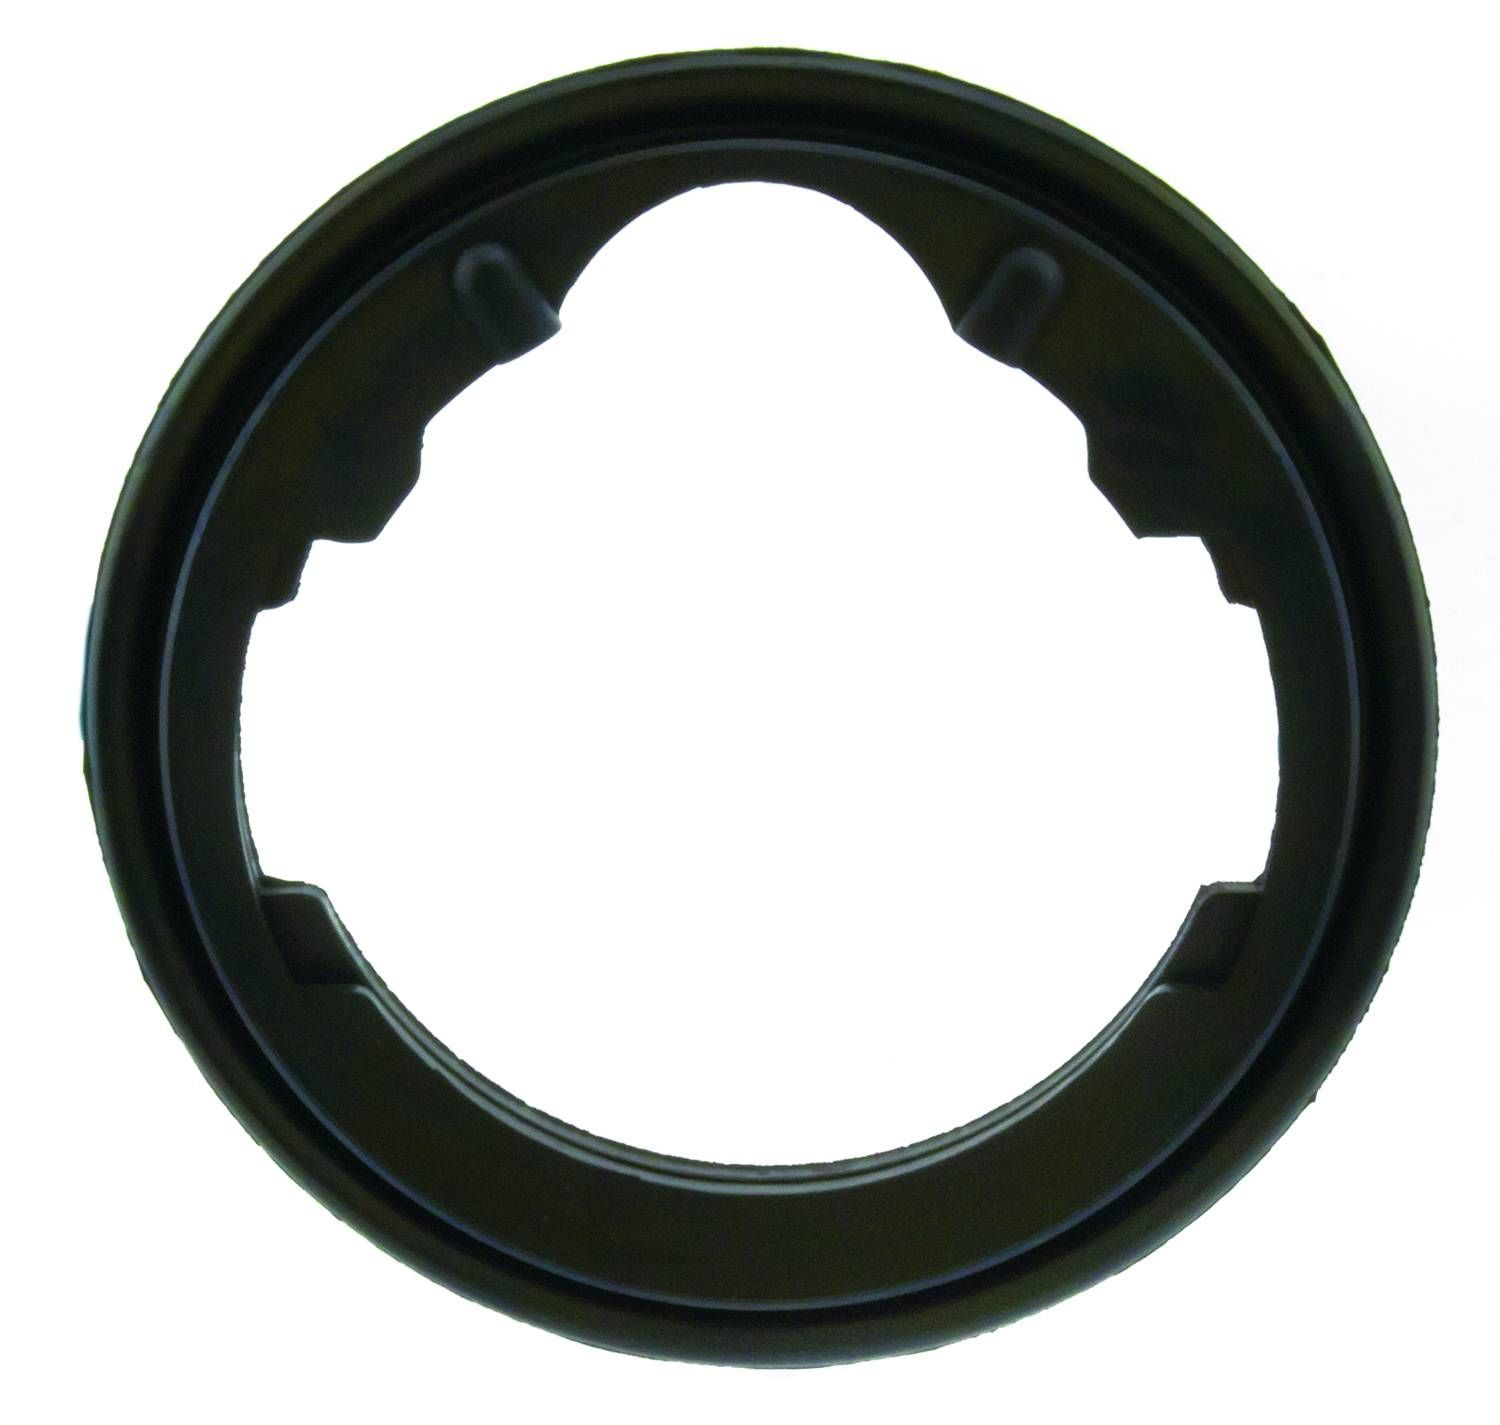 AISIN WORLD CORP. OF AMERICA - Engine Coolant Thermostat Gasket - AIS THP-506